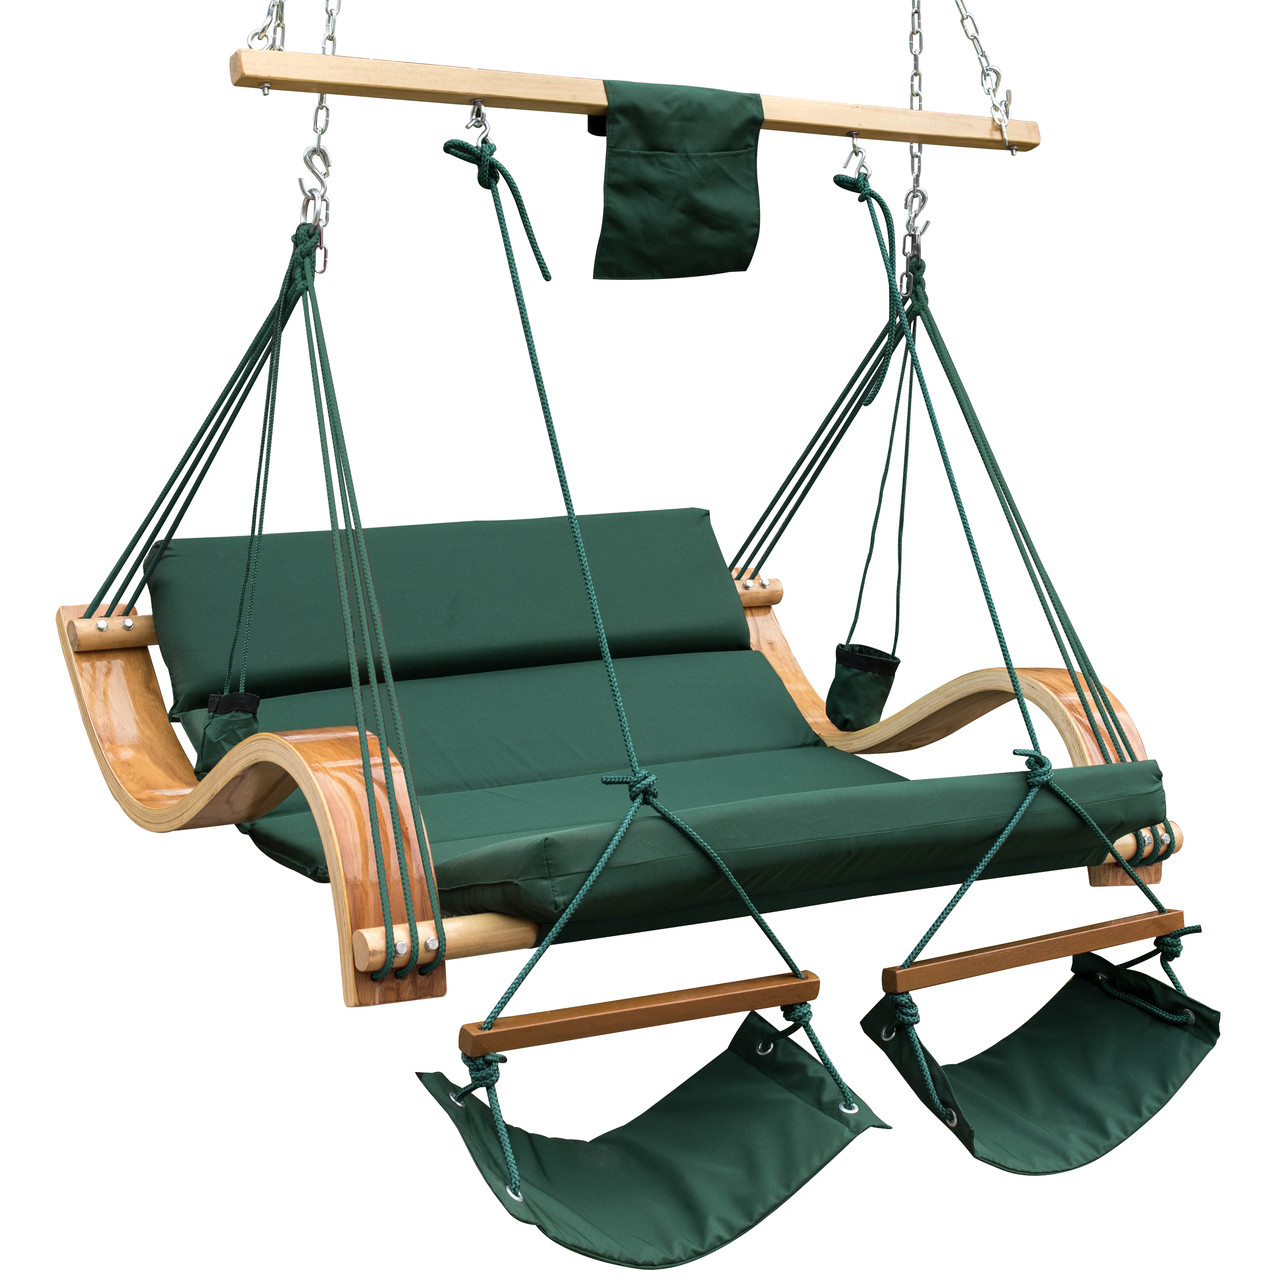 Attractive Lazy Daze Hammocks Deluxe Oversized Double Hanging Rope Chair Cotton Padded  Swing Chair Wood Arc Hammock